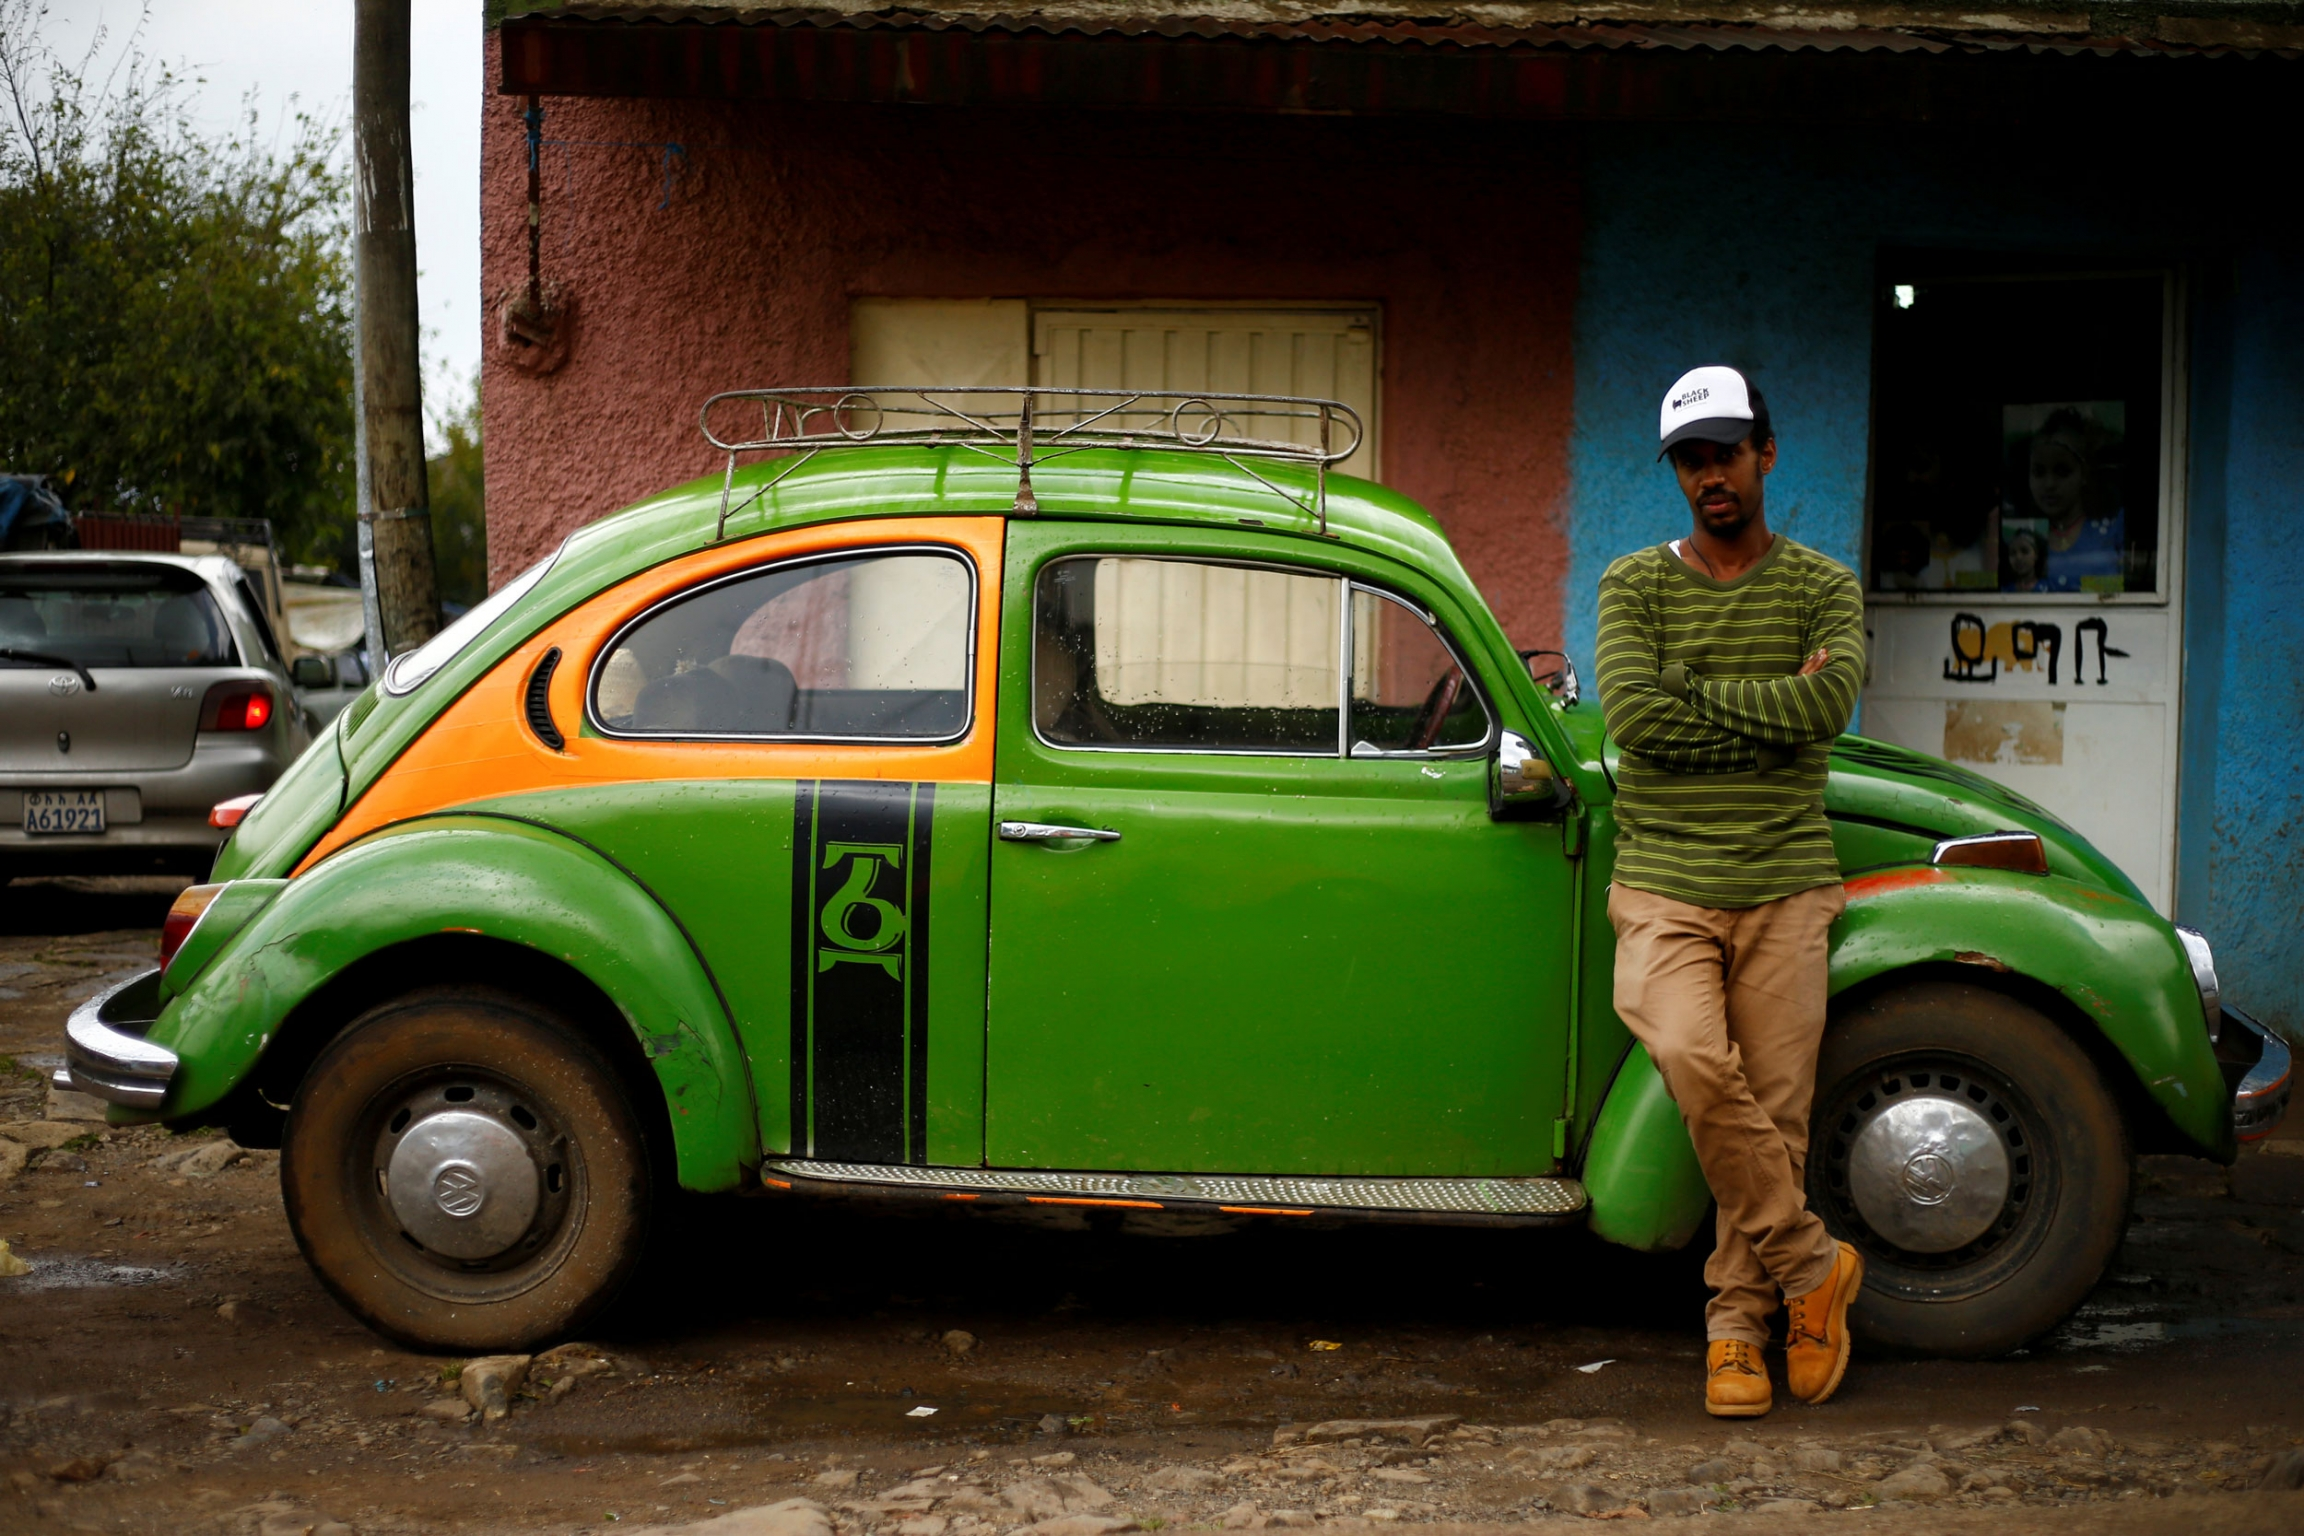 A man in a stripped shirt and hat is shown standing next to a green 1976 model Volkswagen Beetle.